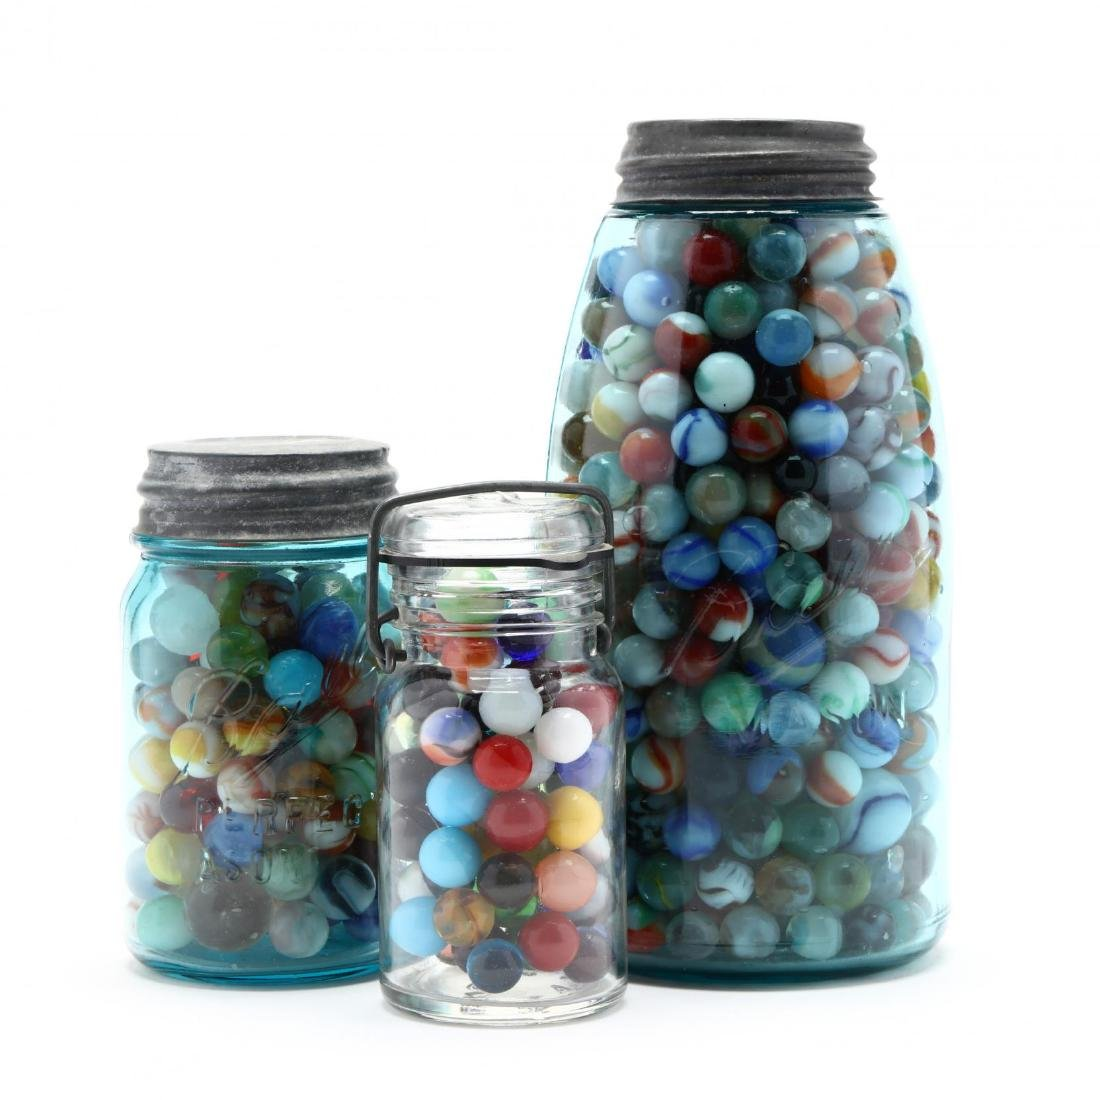 Three Vintage Jars of Marbles